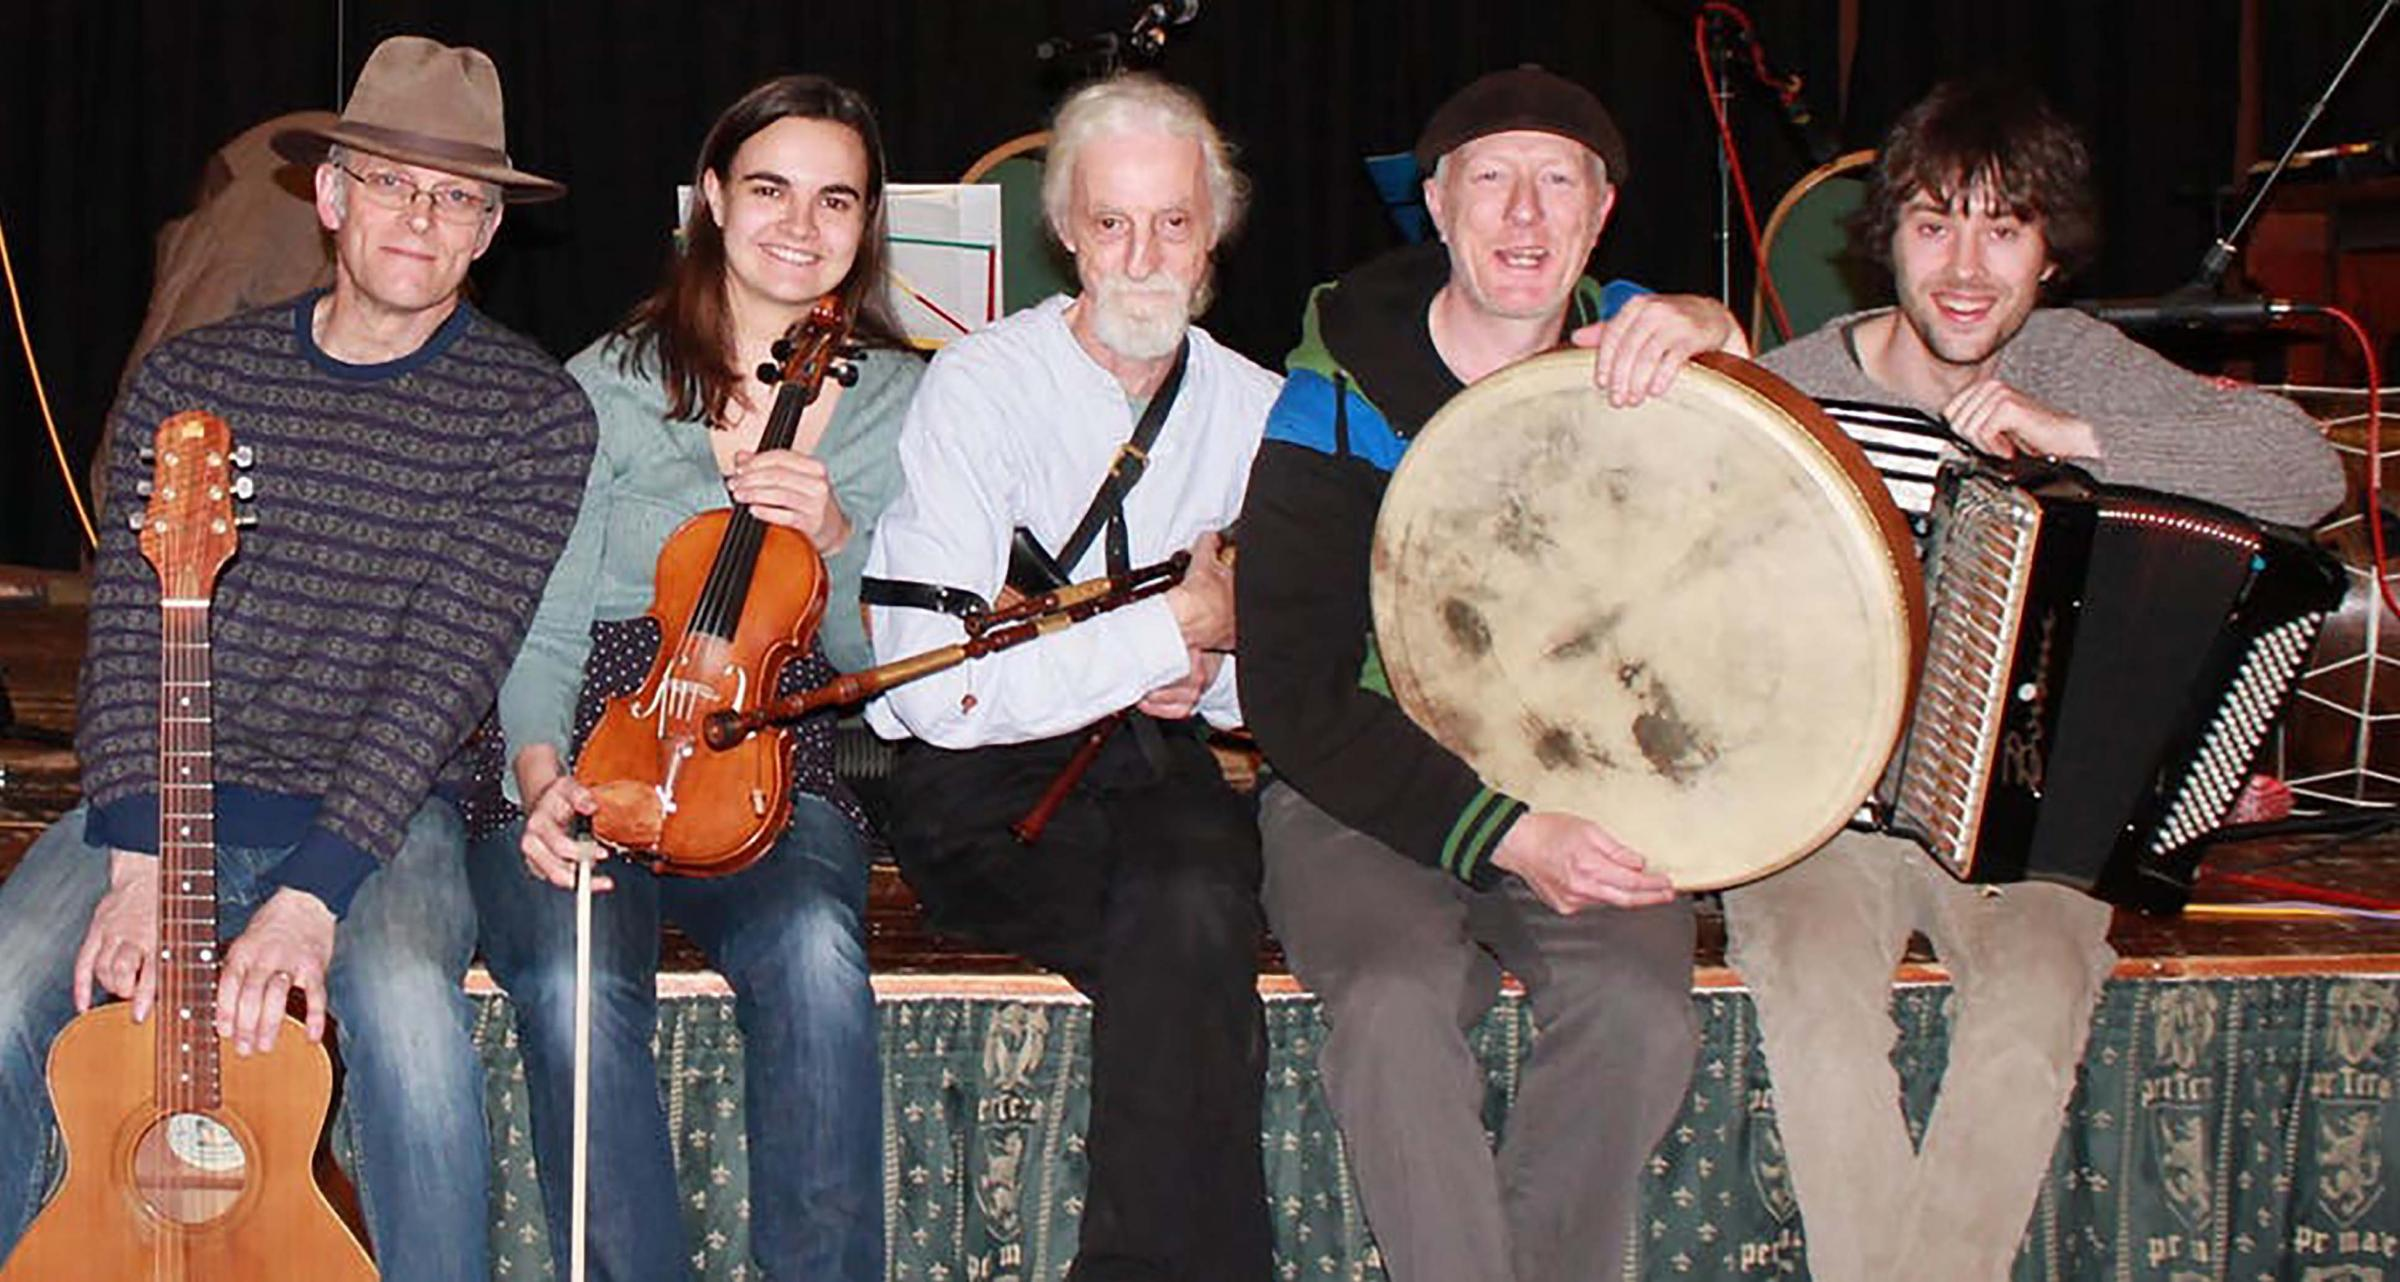 The Matt Seattle Ceilidh Band are joining in with the national day events